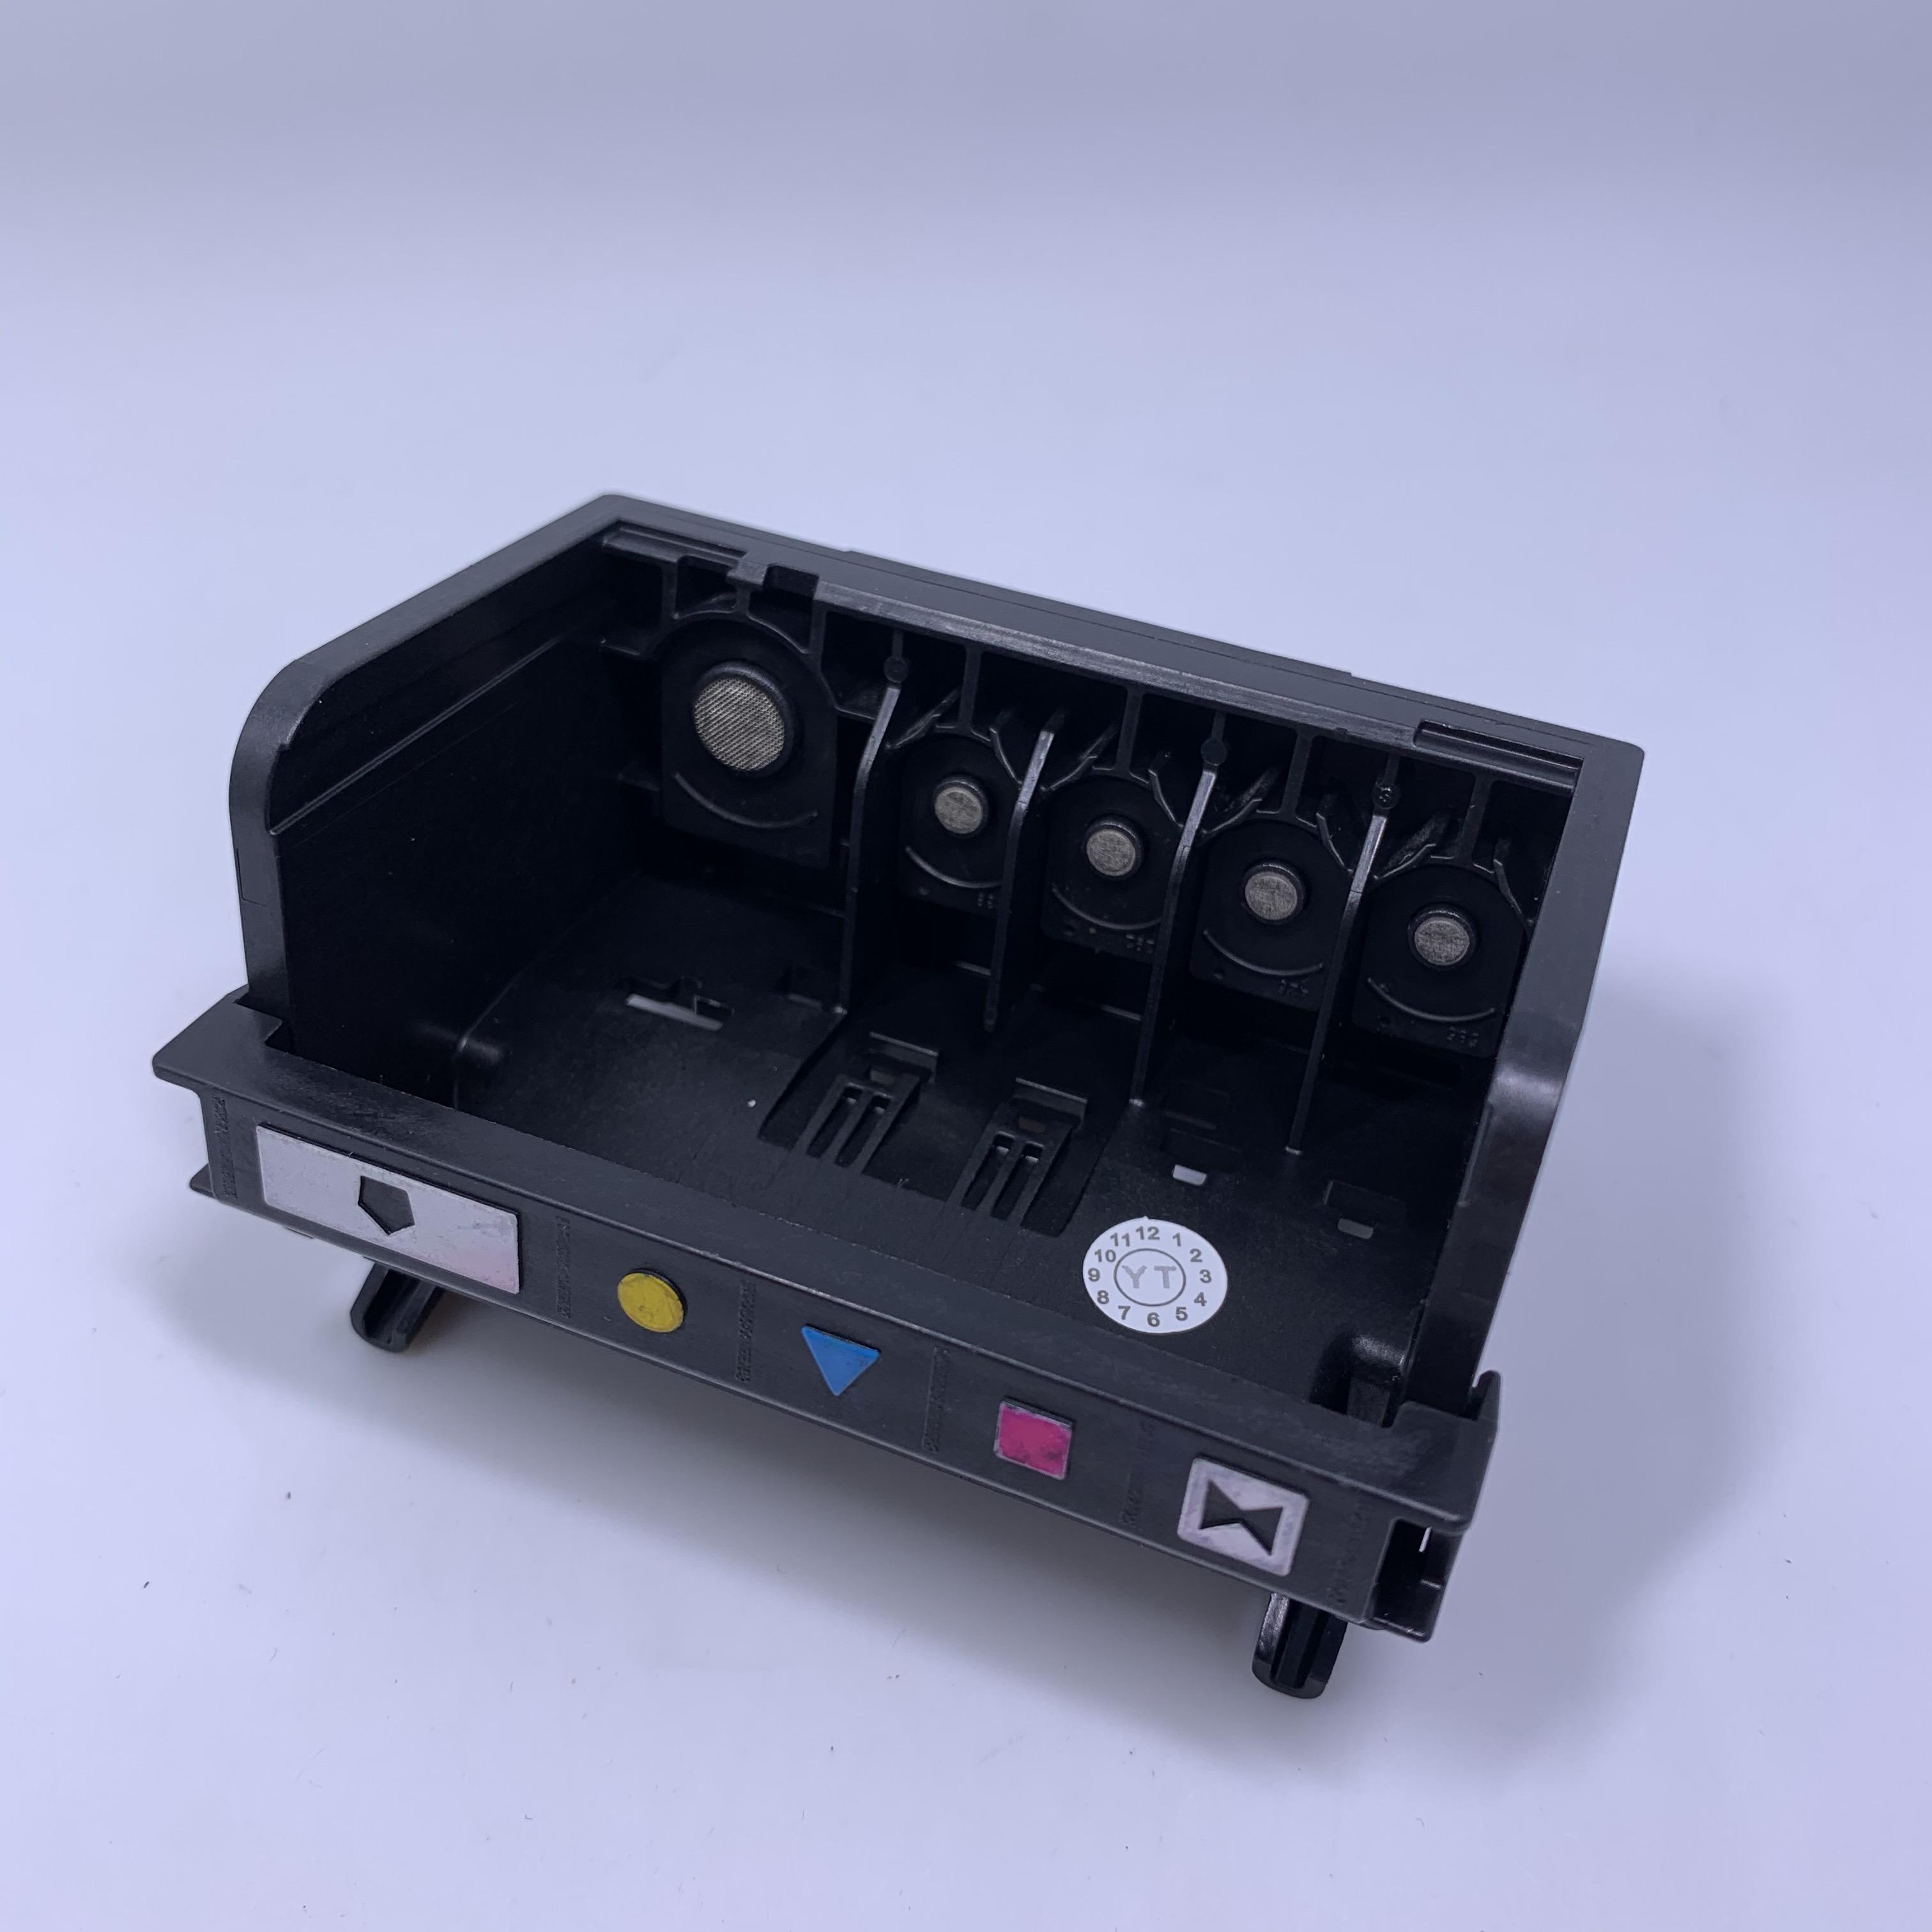 YOTAT 5 slot remanufactured printhead For HP 564 HP564 print head For HP Photosmart D5460/D5463/D5468/C5324/C5370/C5373 printer